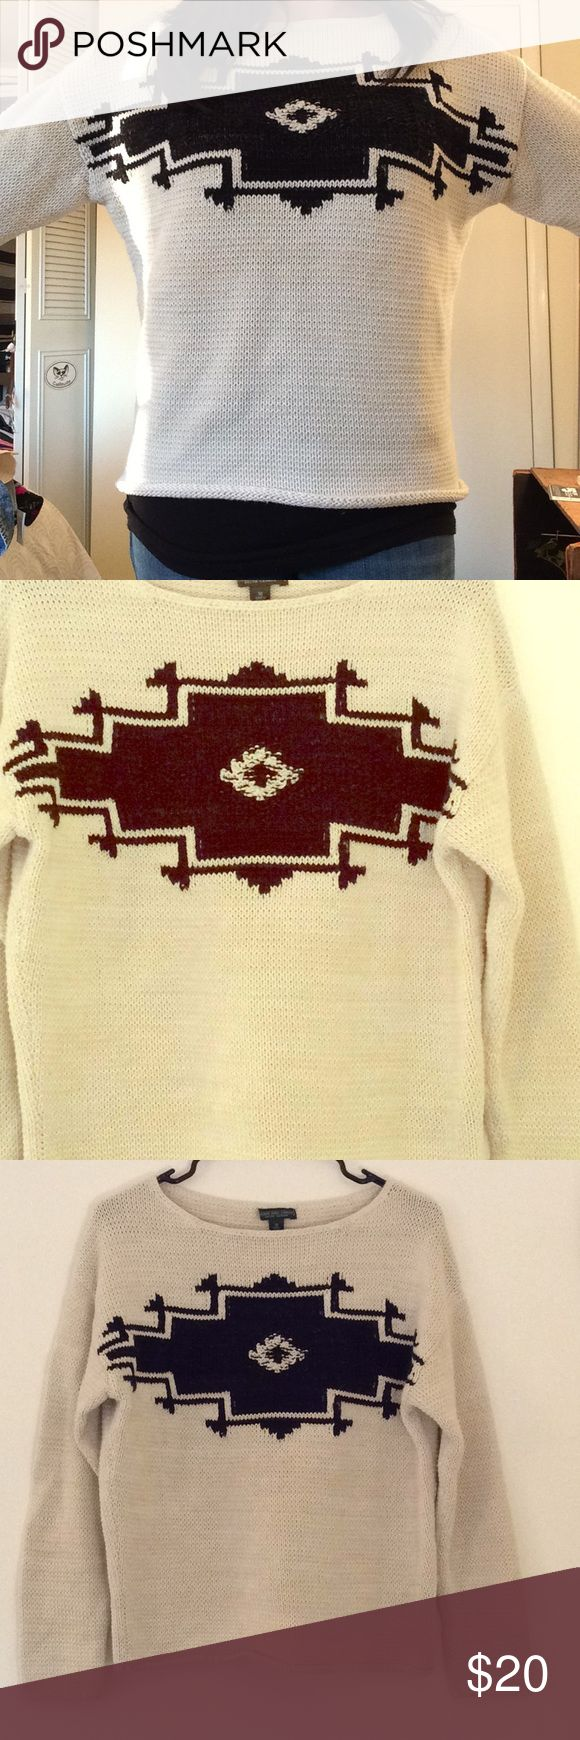 Ralph Lauren Tribal Sweater This is an off white and black tribal sweater from Ralph Lauren {Lauren Jeans Company}. Knit pattern. Size M.  Great condition- no pulling. Ralph Lauren Sweaters